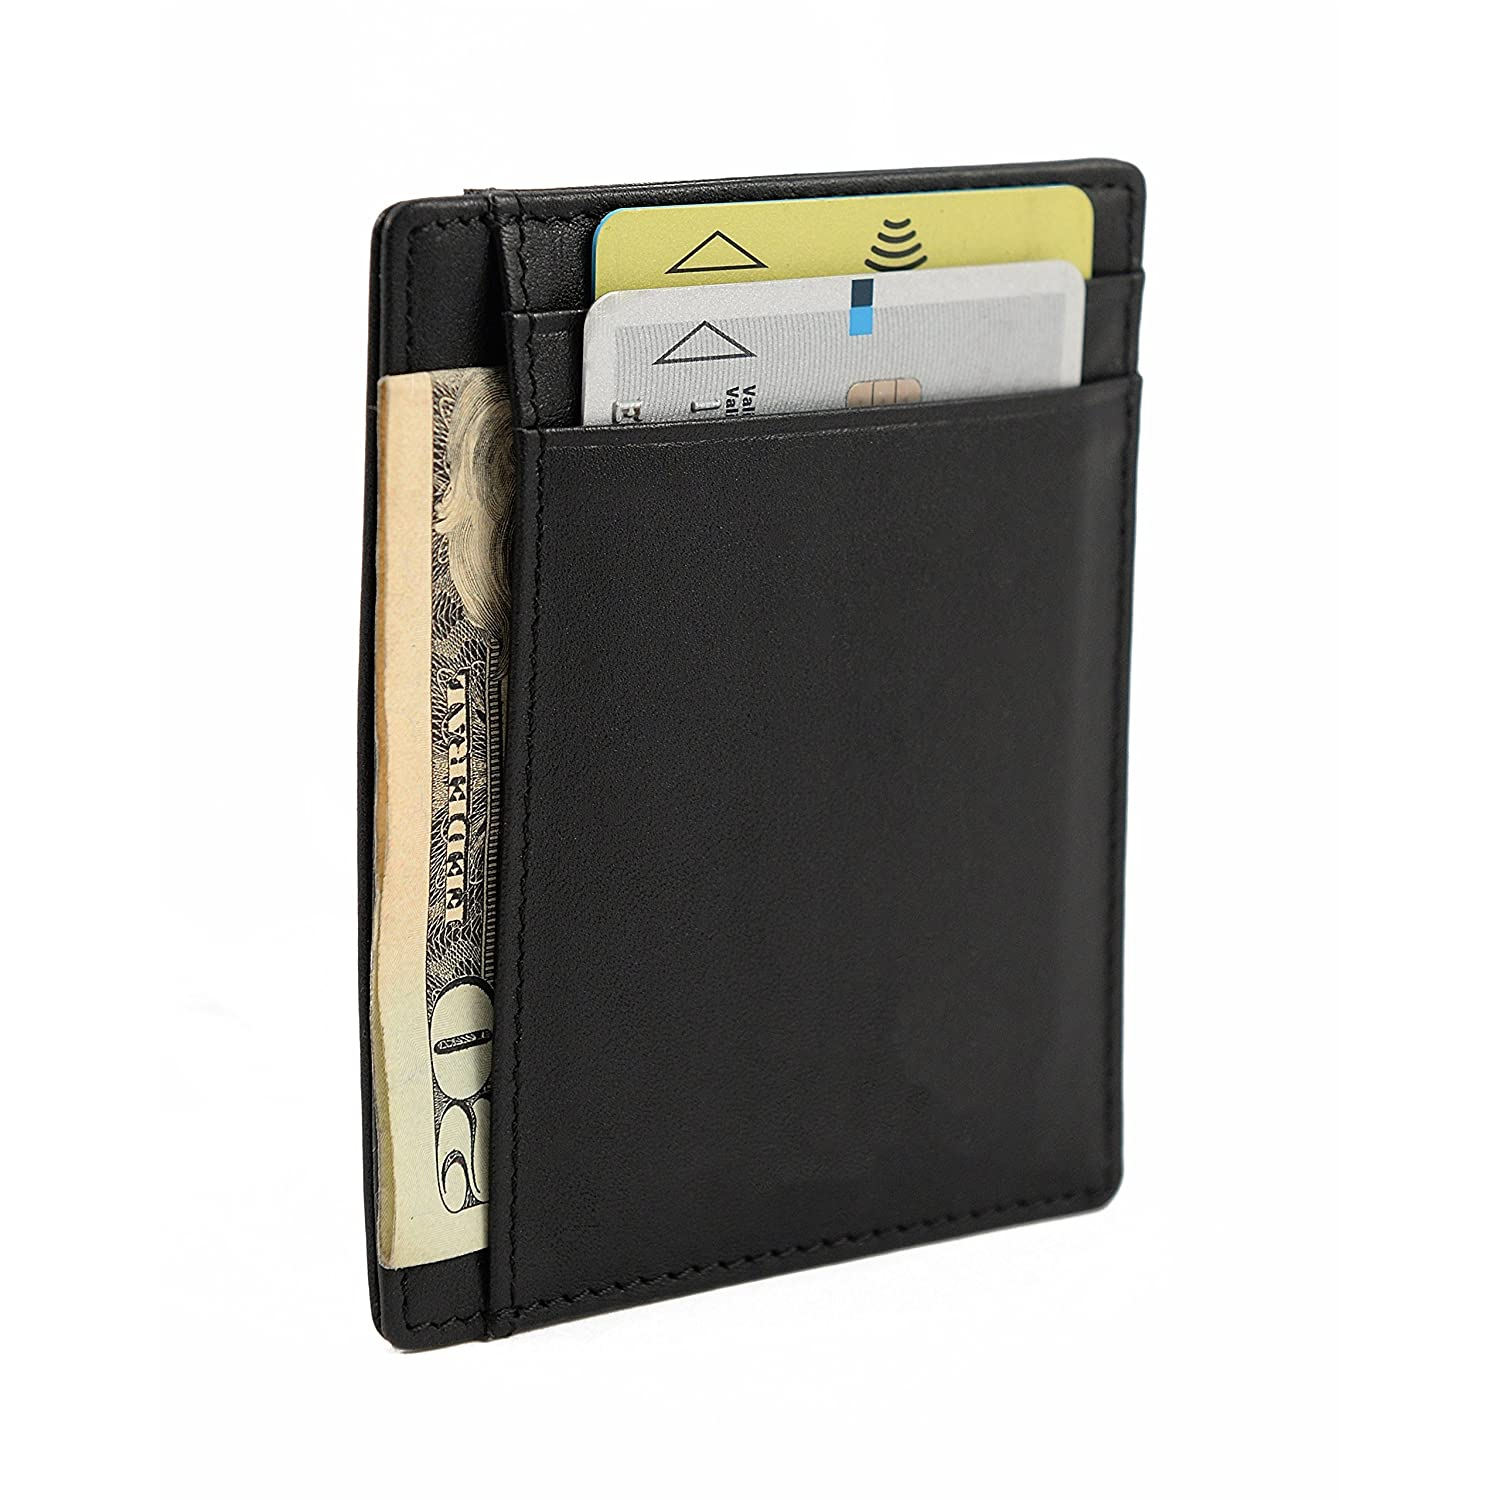 0c31d5df27a0 Slim card holder by Nomalite | Black designer RFID blocking wallet/credit  card organiser in PU leather for men and women. Compact and light: also fit  for ...